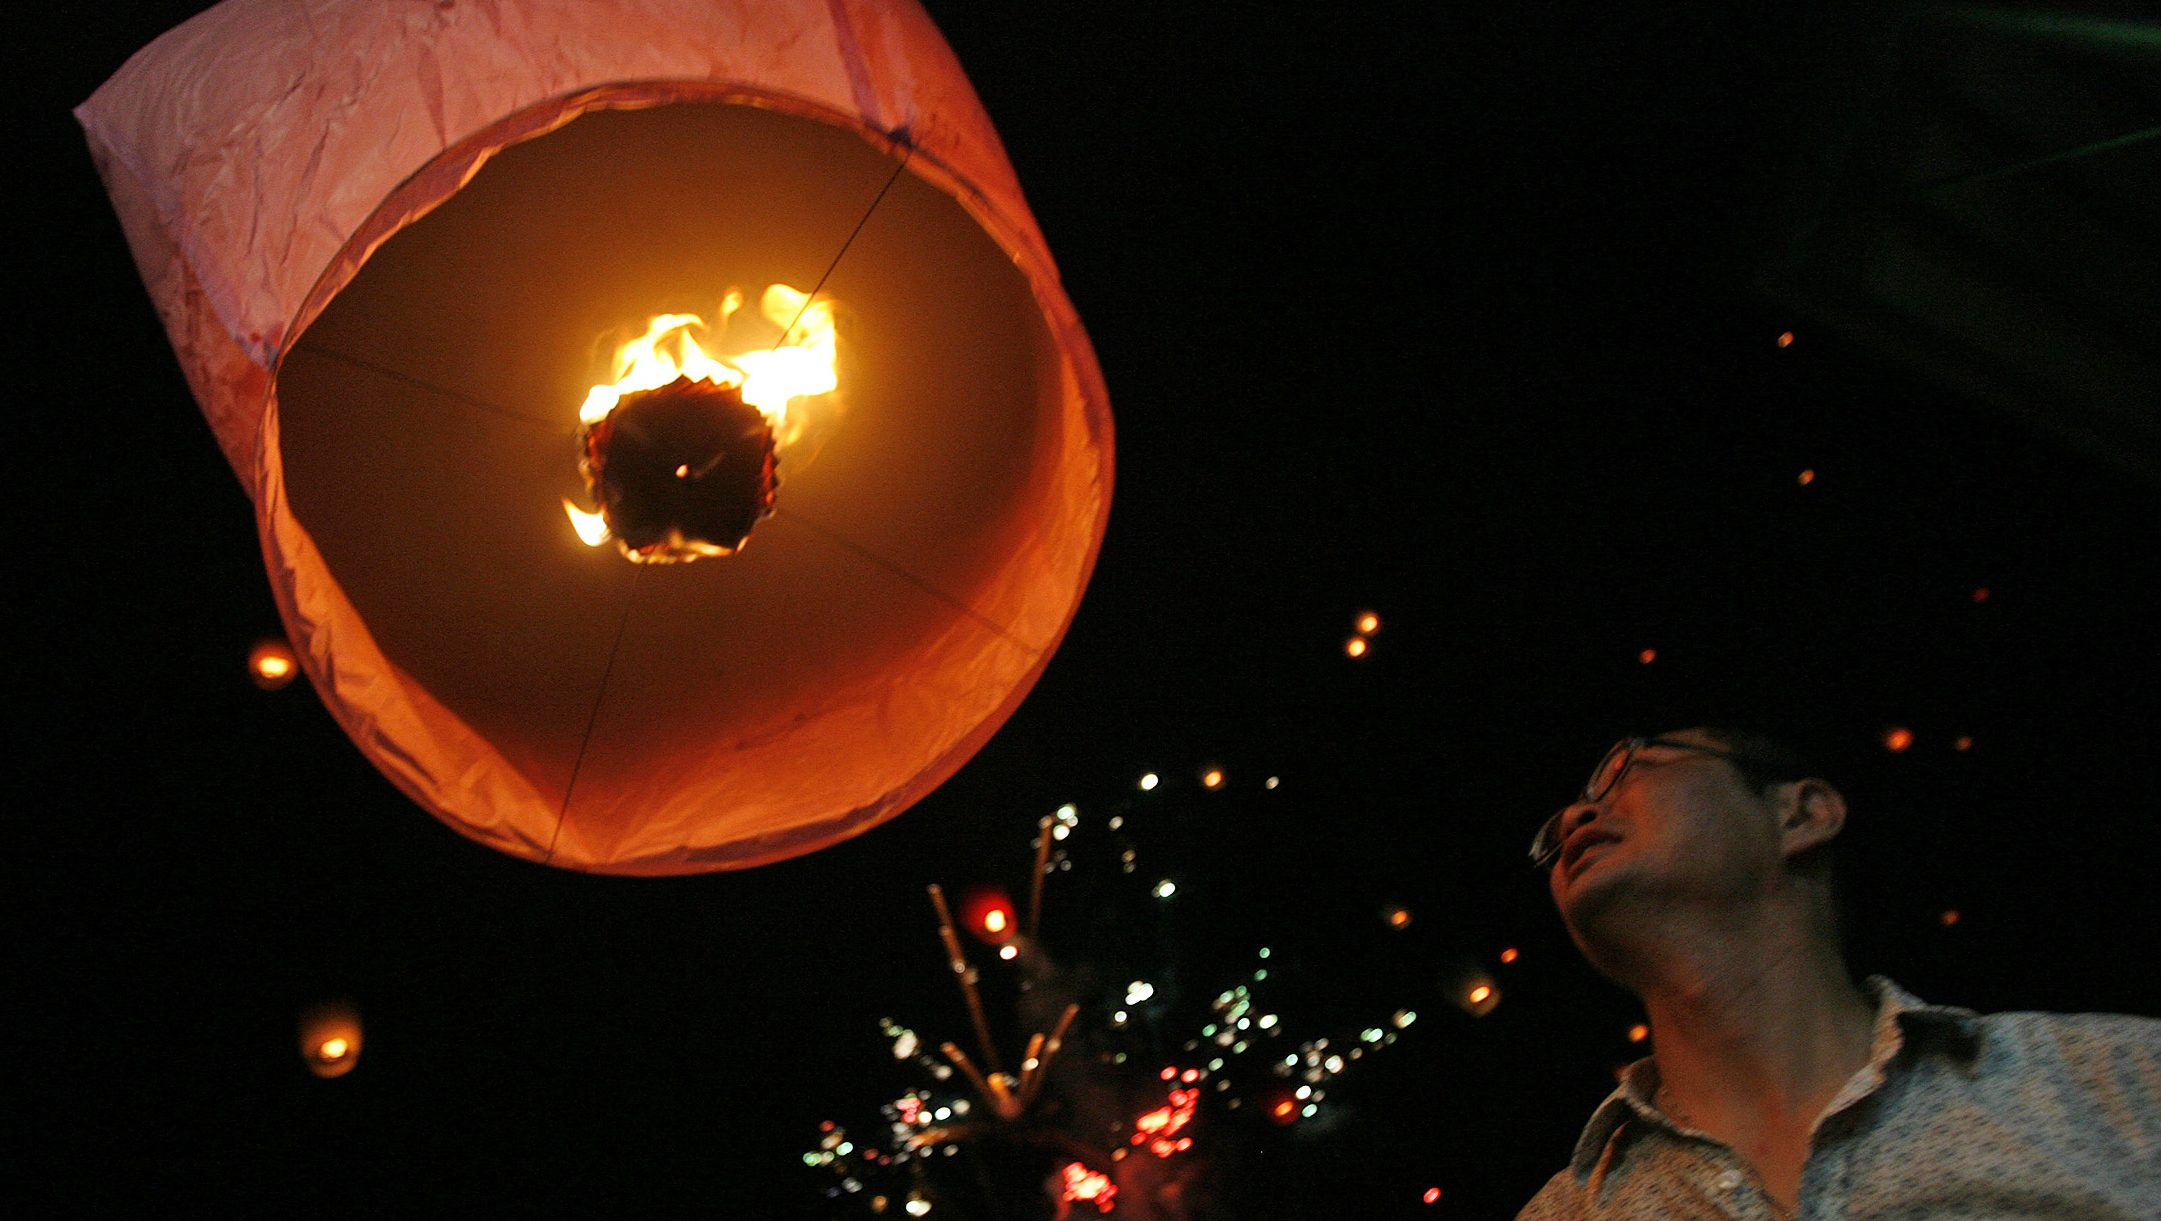 """A man releases a lantern during Chinese Valentine's Day or """"Qi Xi"""" festivities in Shifen August 25, 2007. Chinese Valentine's Day is usually celebrated on the seventh day of the seventh month of the lunar calendar but festivities were postponed this year due to Typhoon Sepat.  REUTERS/Nicky Loh (TAIWAN) - RTR1T2T3"""